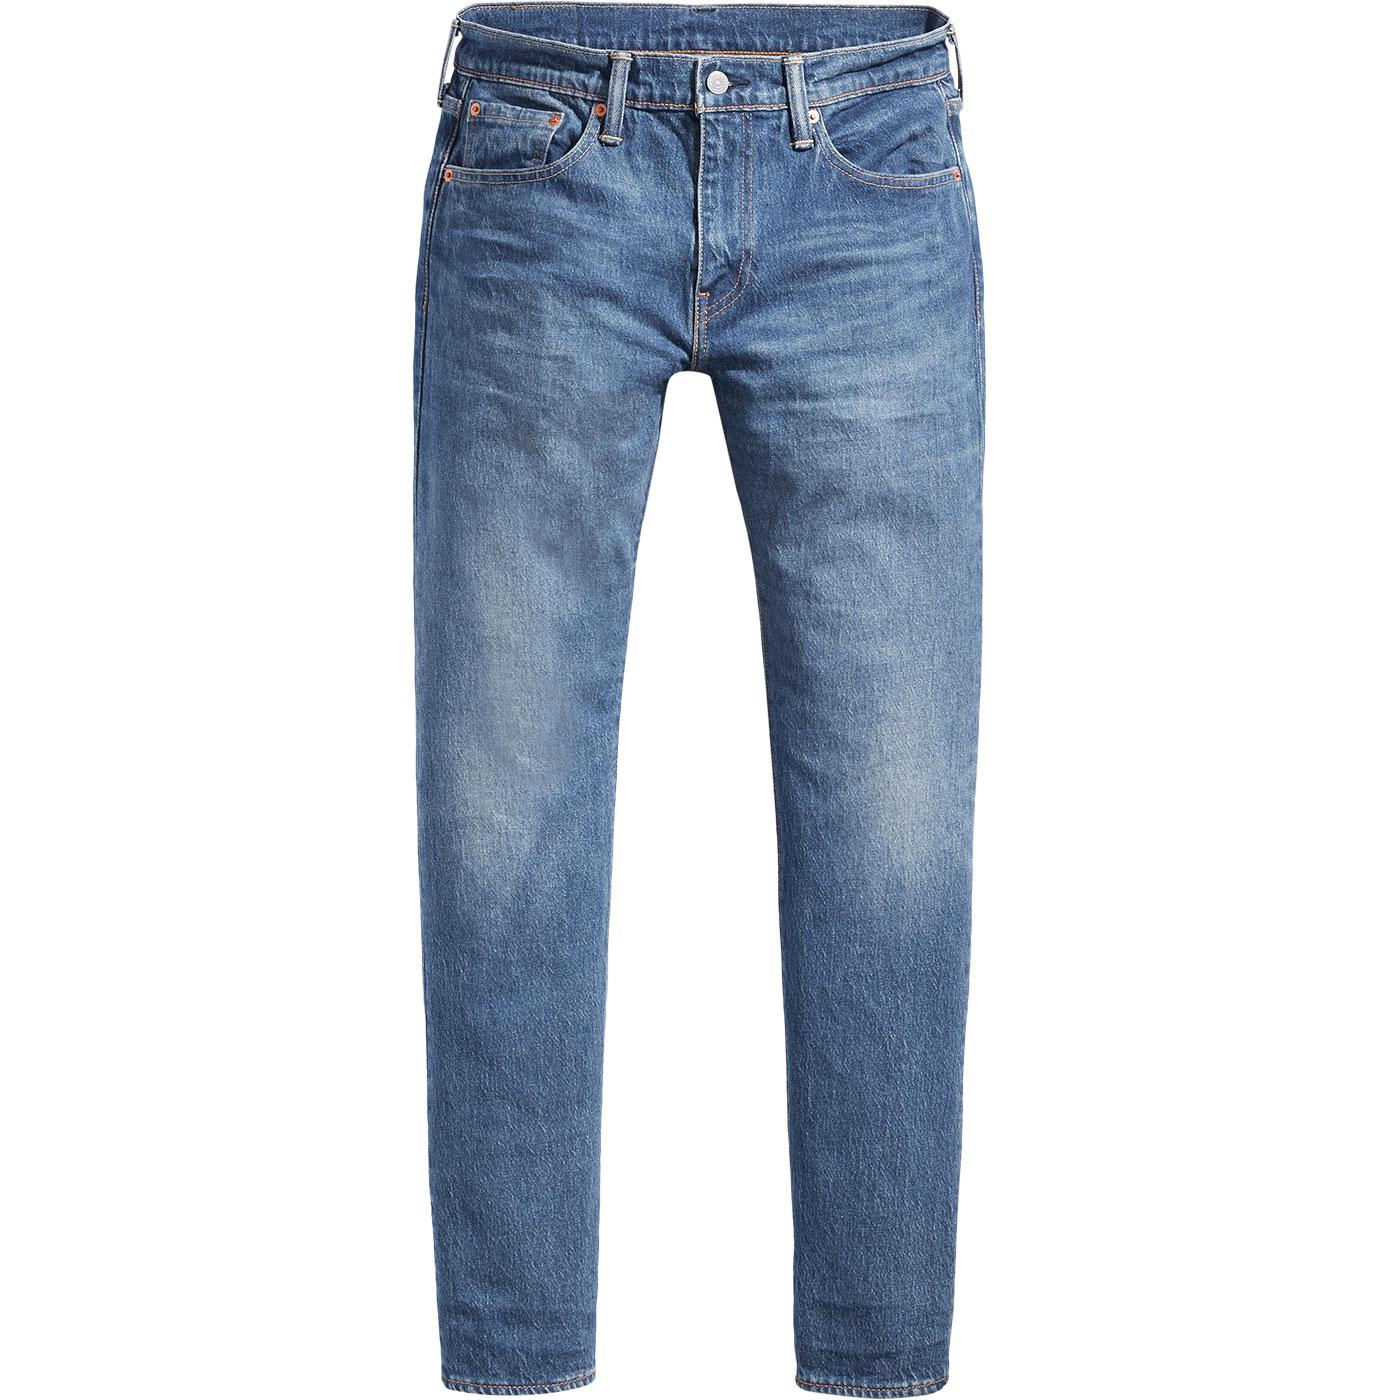 LEVI'S 502 Regular Tapered Mod Denim Jeans SIXTEEN